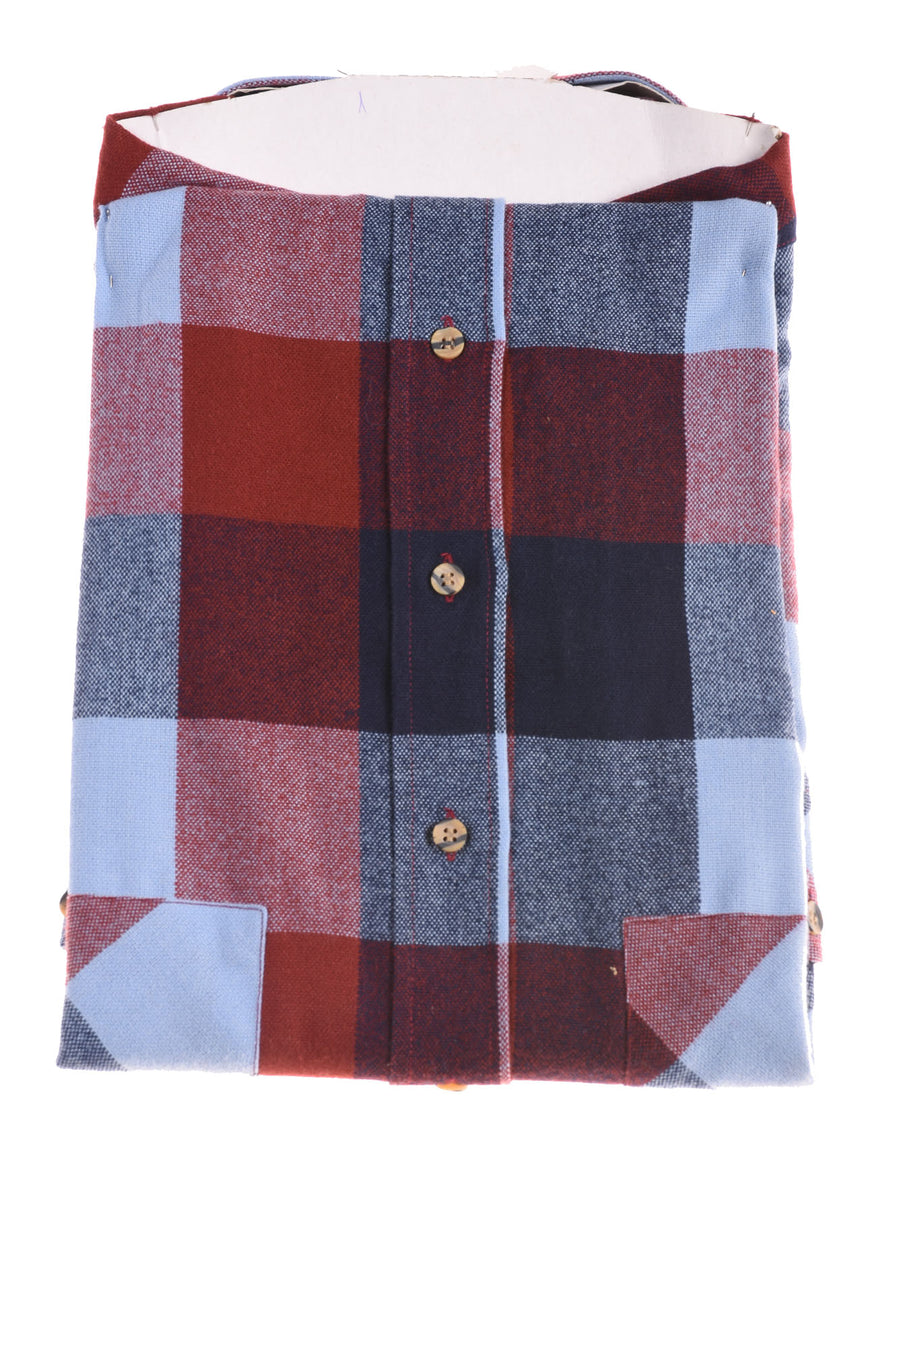 NEW Sutter & Grant Men's Shirt X-Large Blue & Red